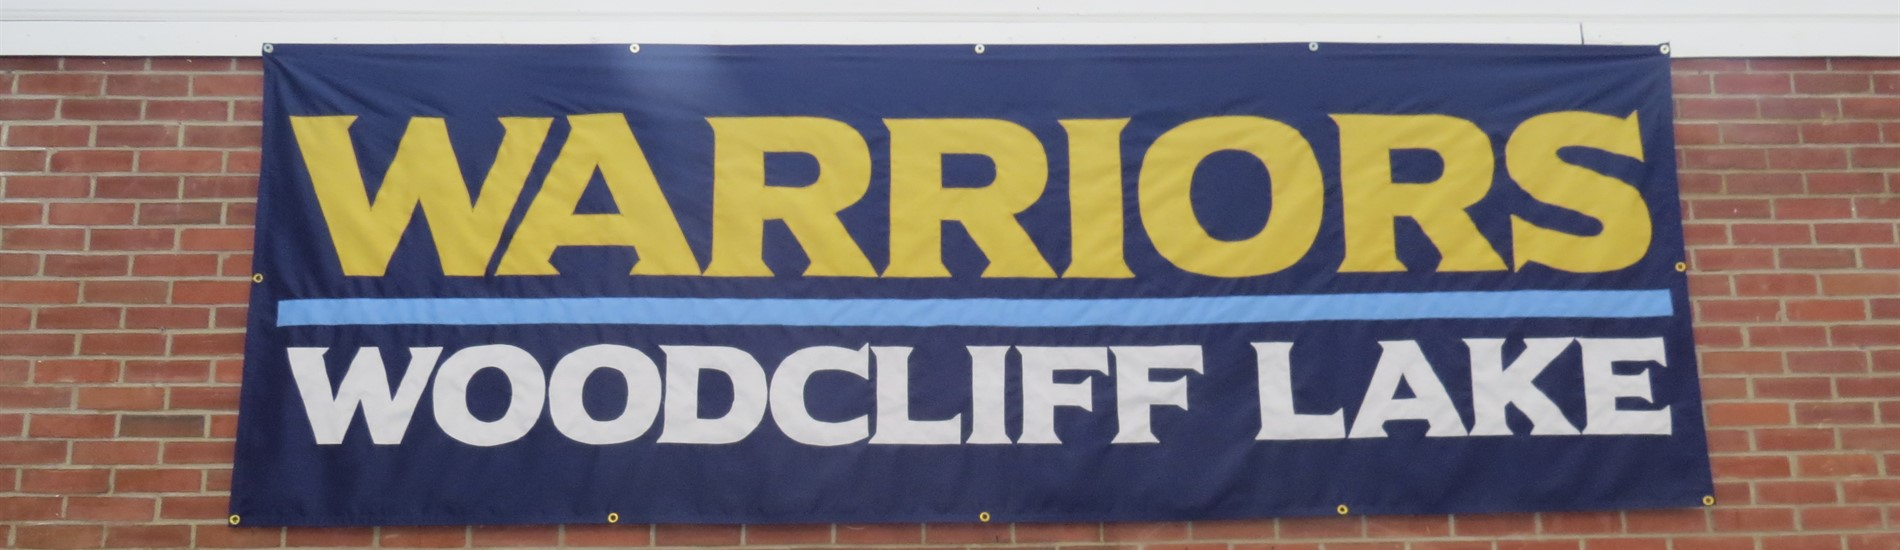 Lobby banner- Warriors - Woodcliff Lake